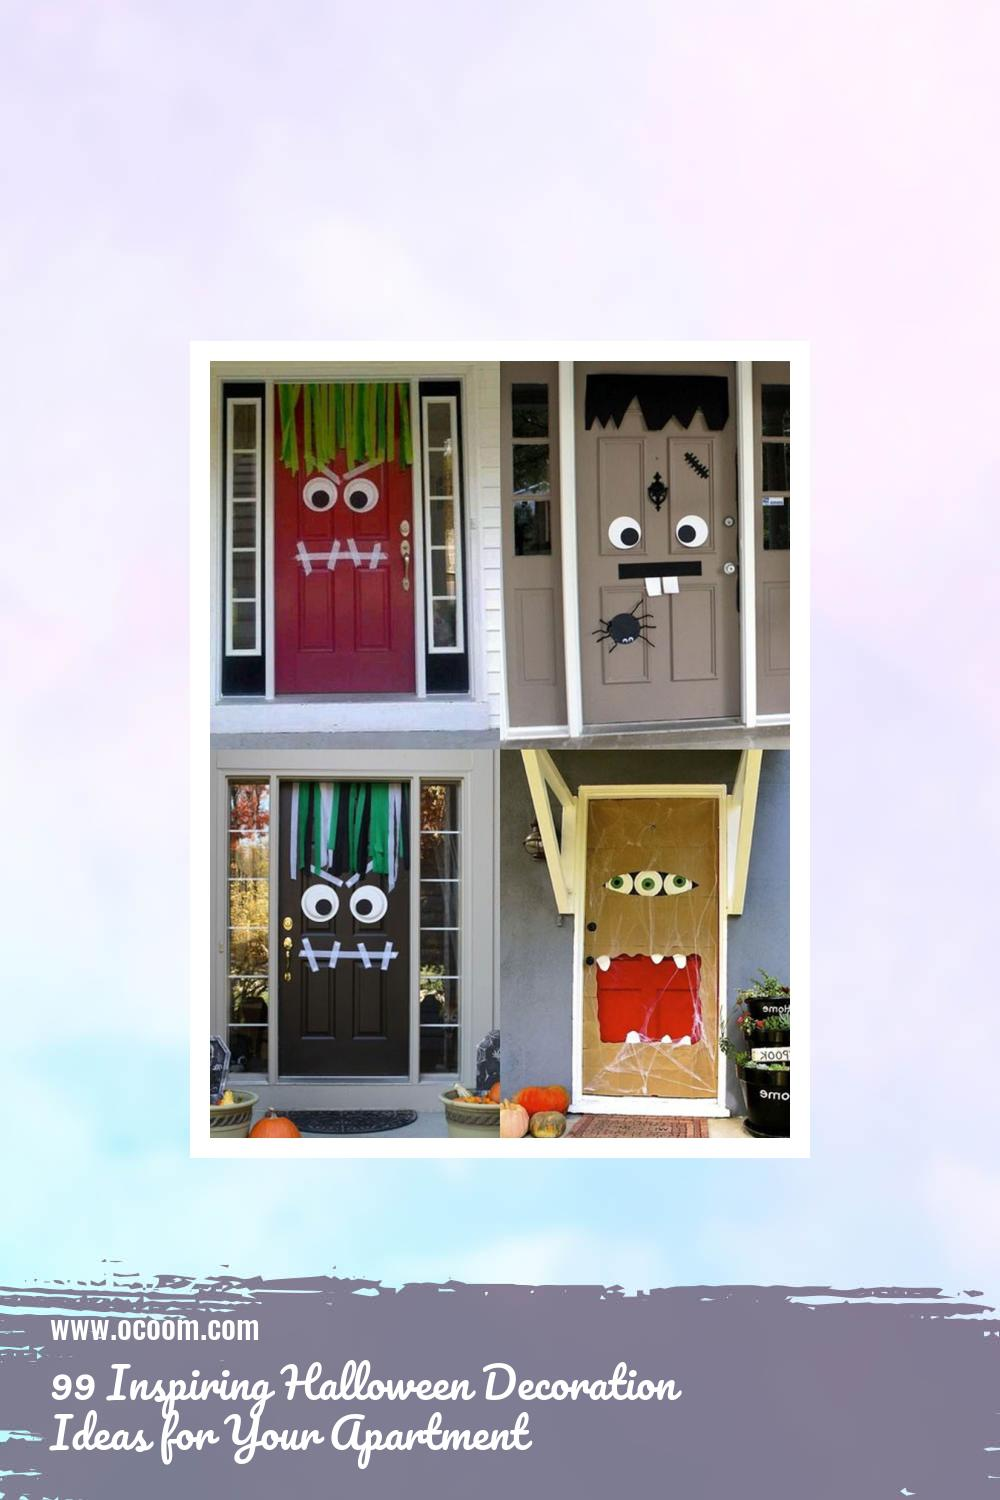 99 Inspiring Halloween Decoration Ideas for Your Apartment 64